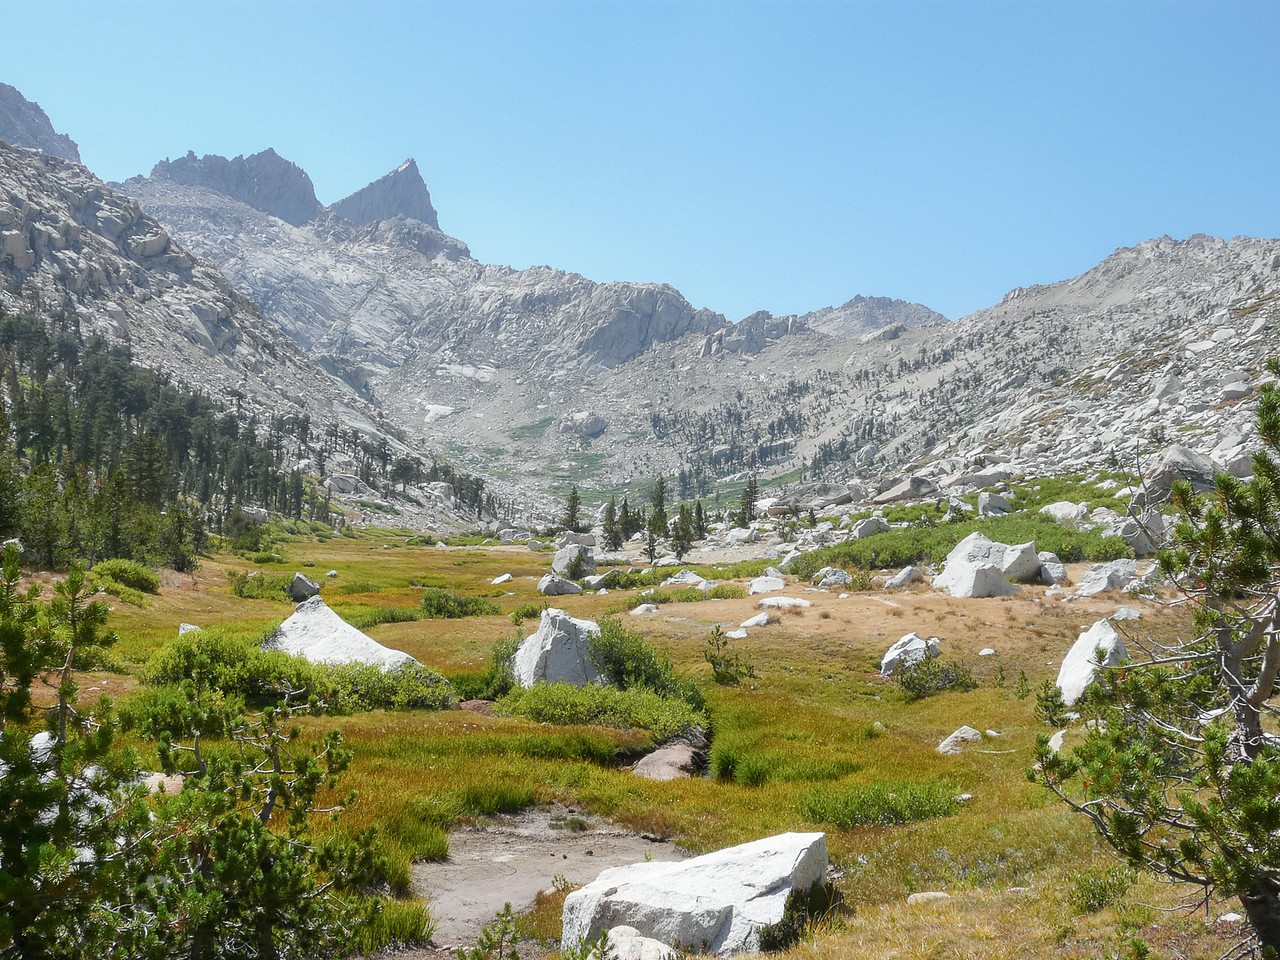 At 10,200', after about 600 feet of climbing, the forest gave way to a long, rocky, and windy meadow.